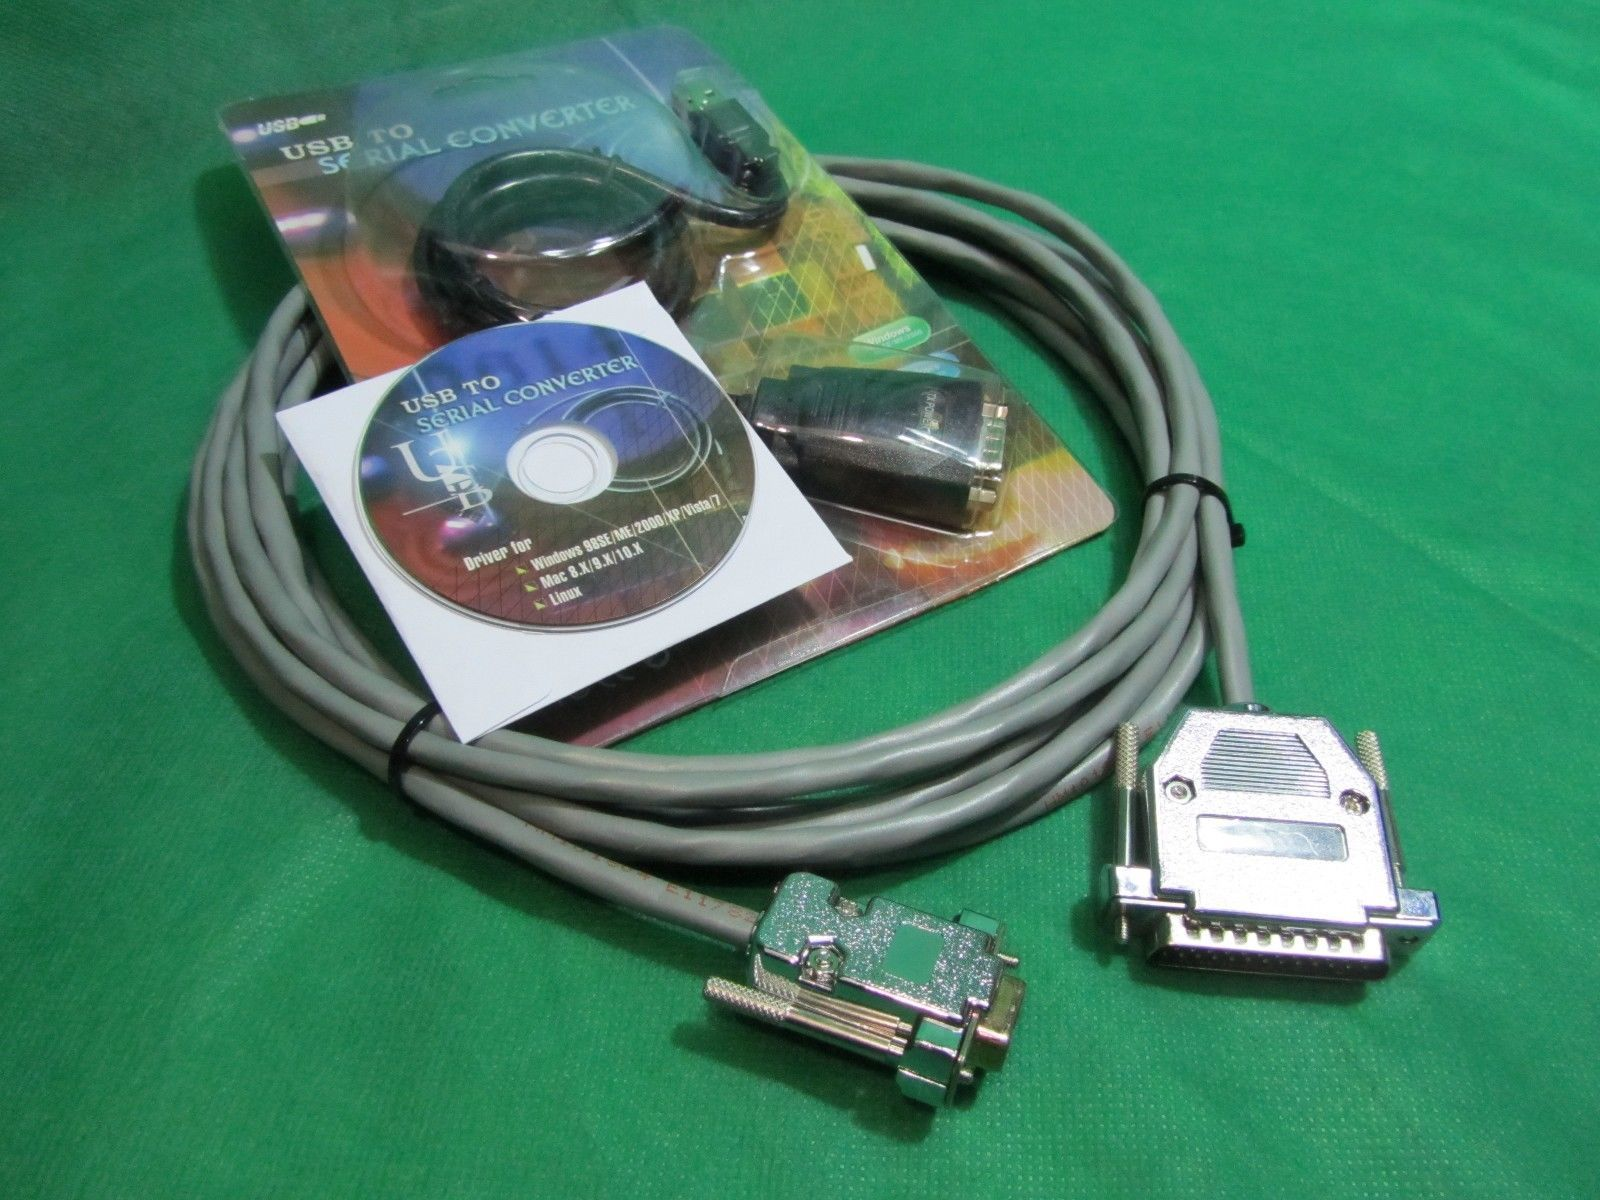 Primary image for 15 ft Quality CNC DNC RS232 Serial Cable DB9F to DB25M for PC and Laptop Kit.